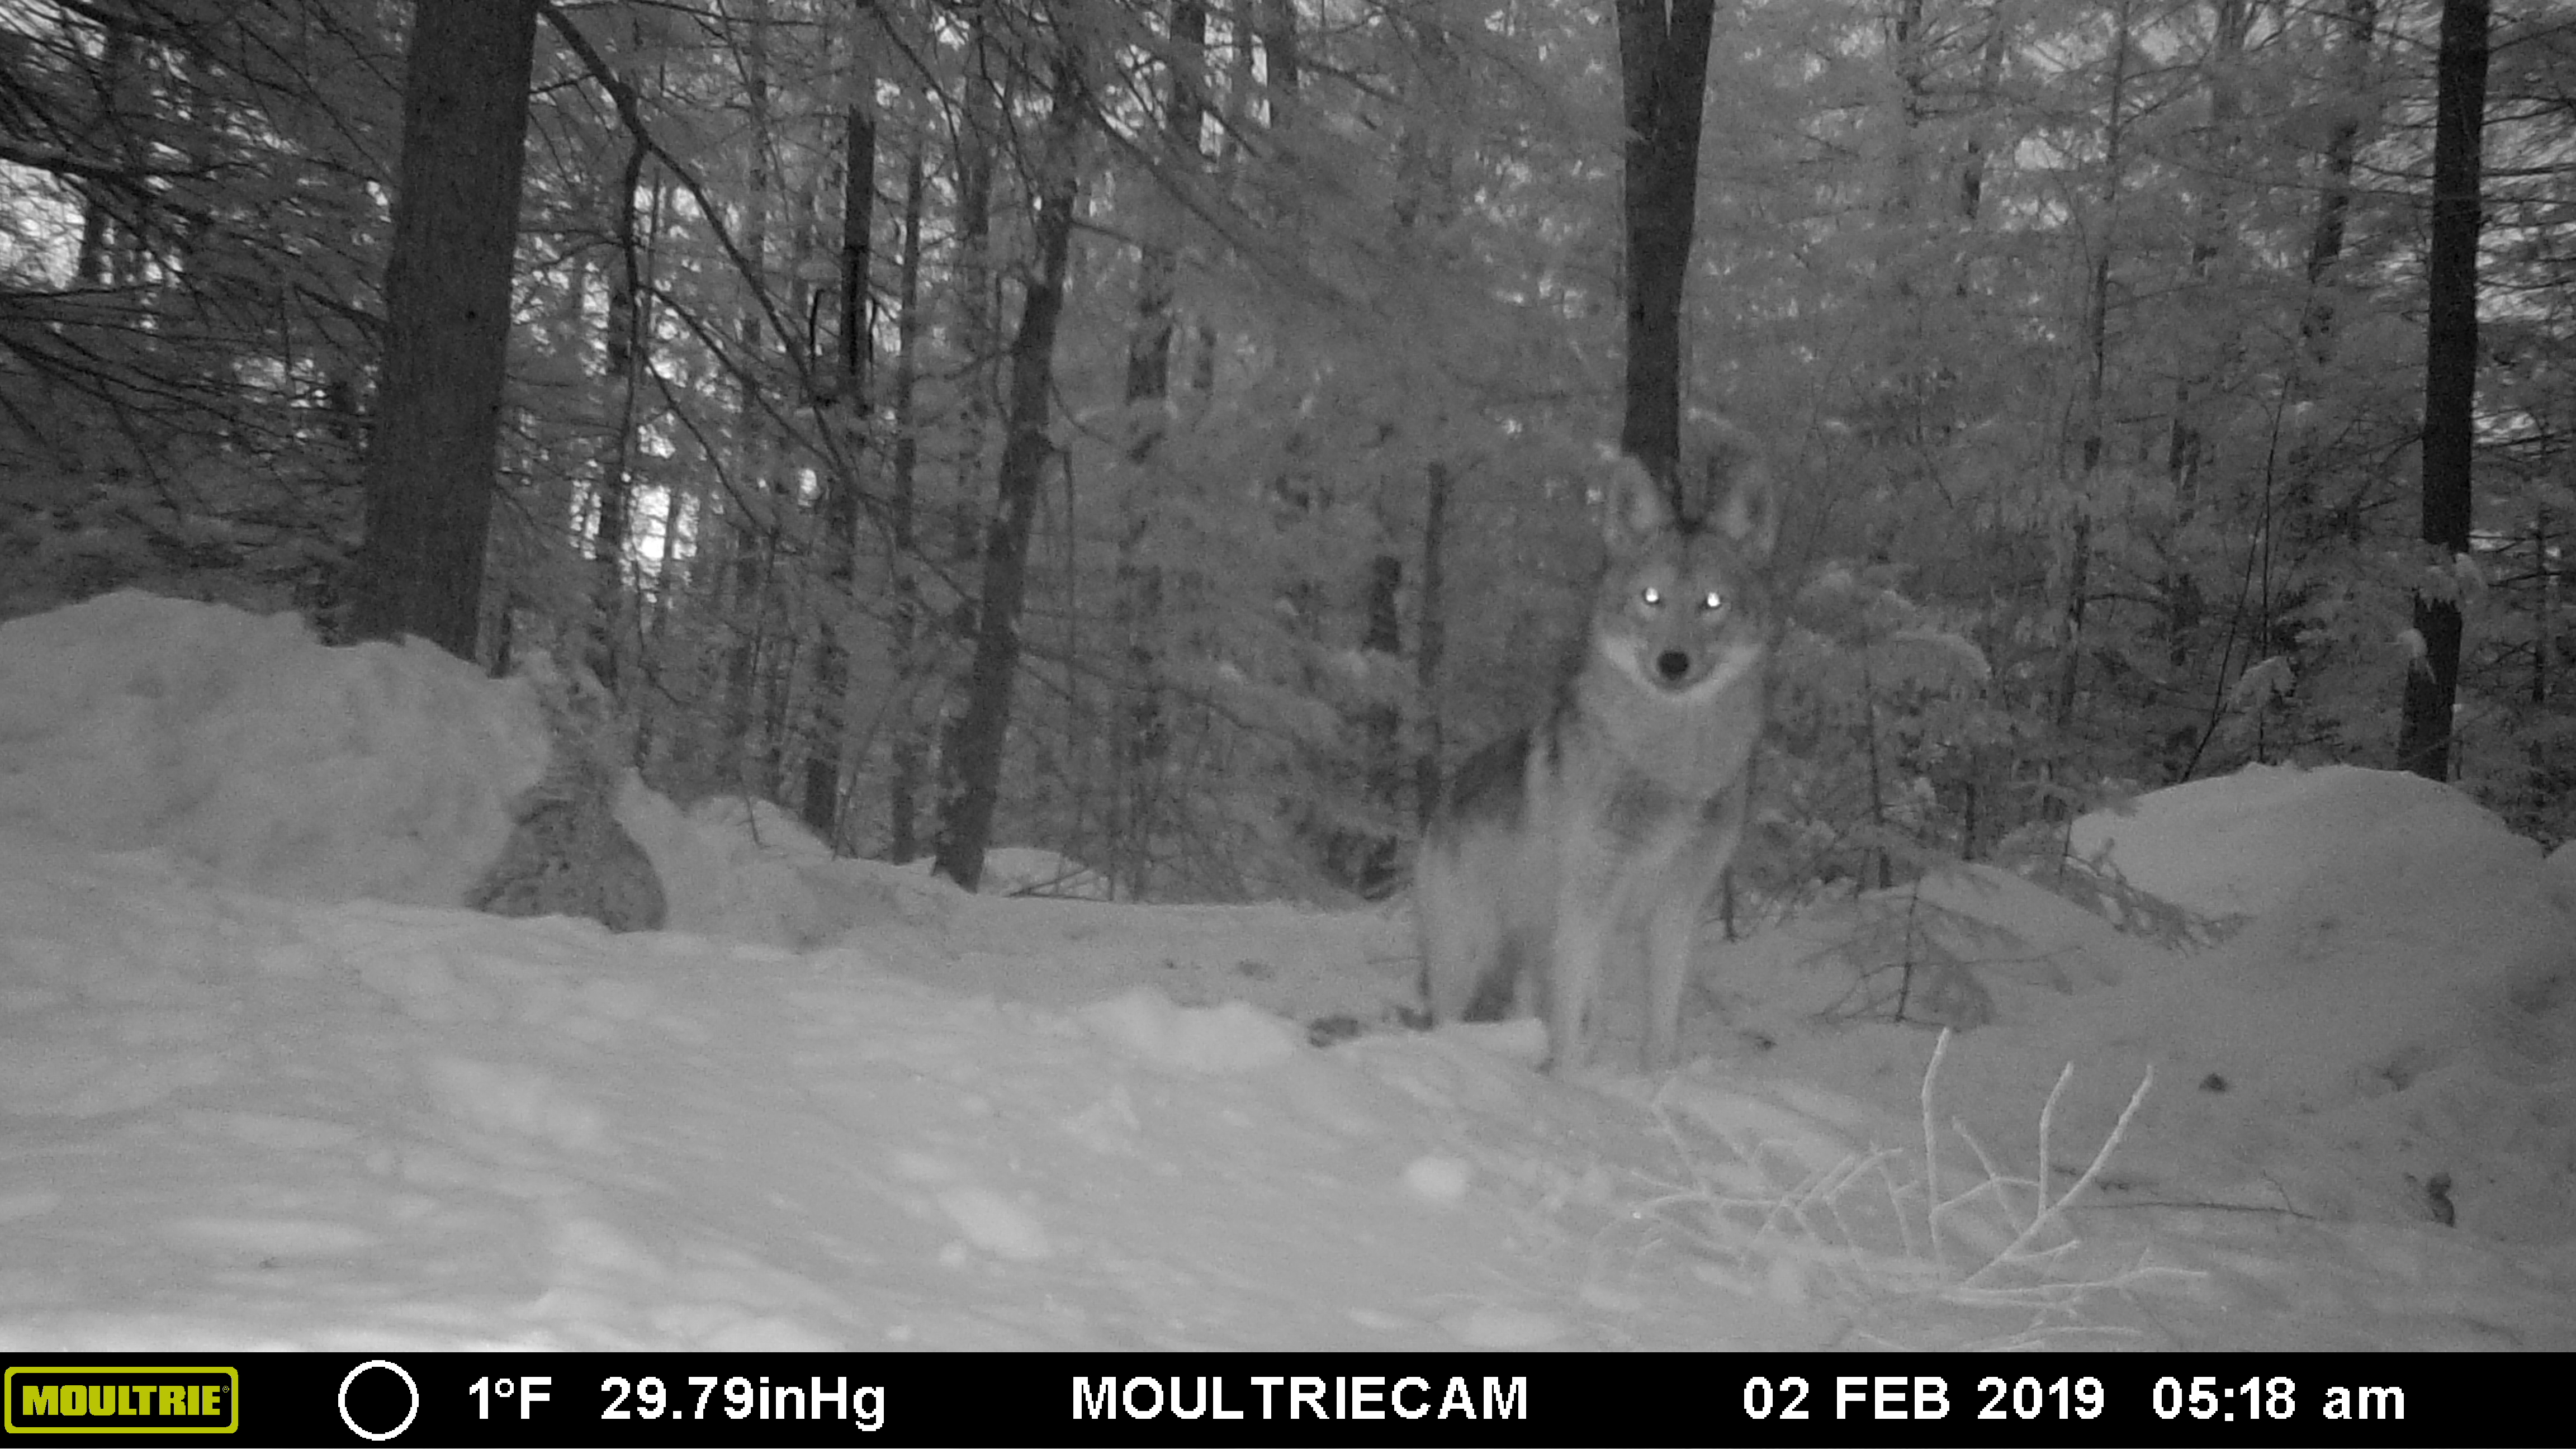 Winter Critters on the Game Camera